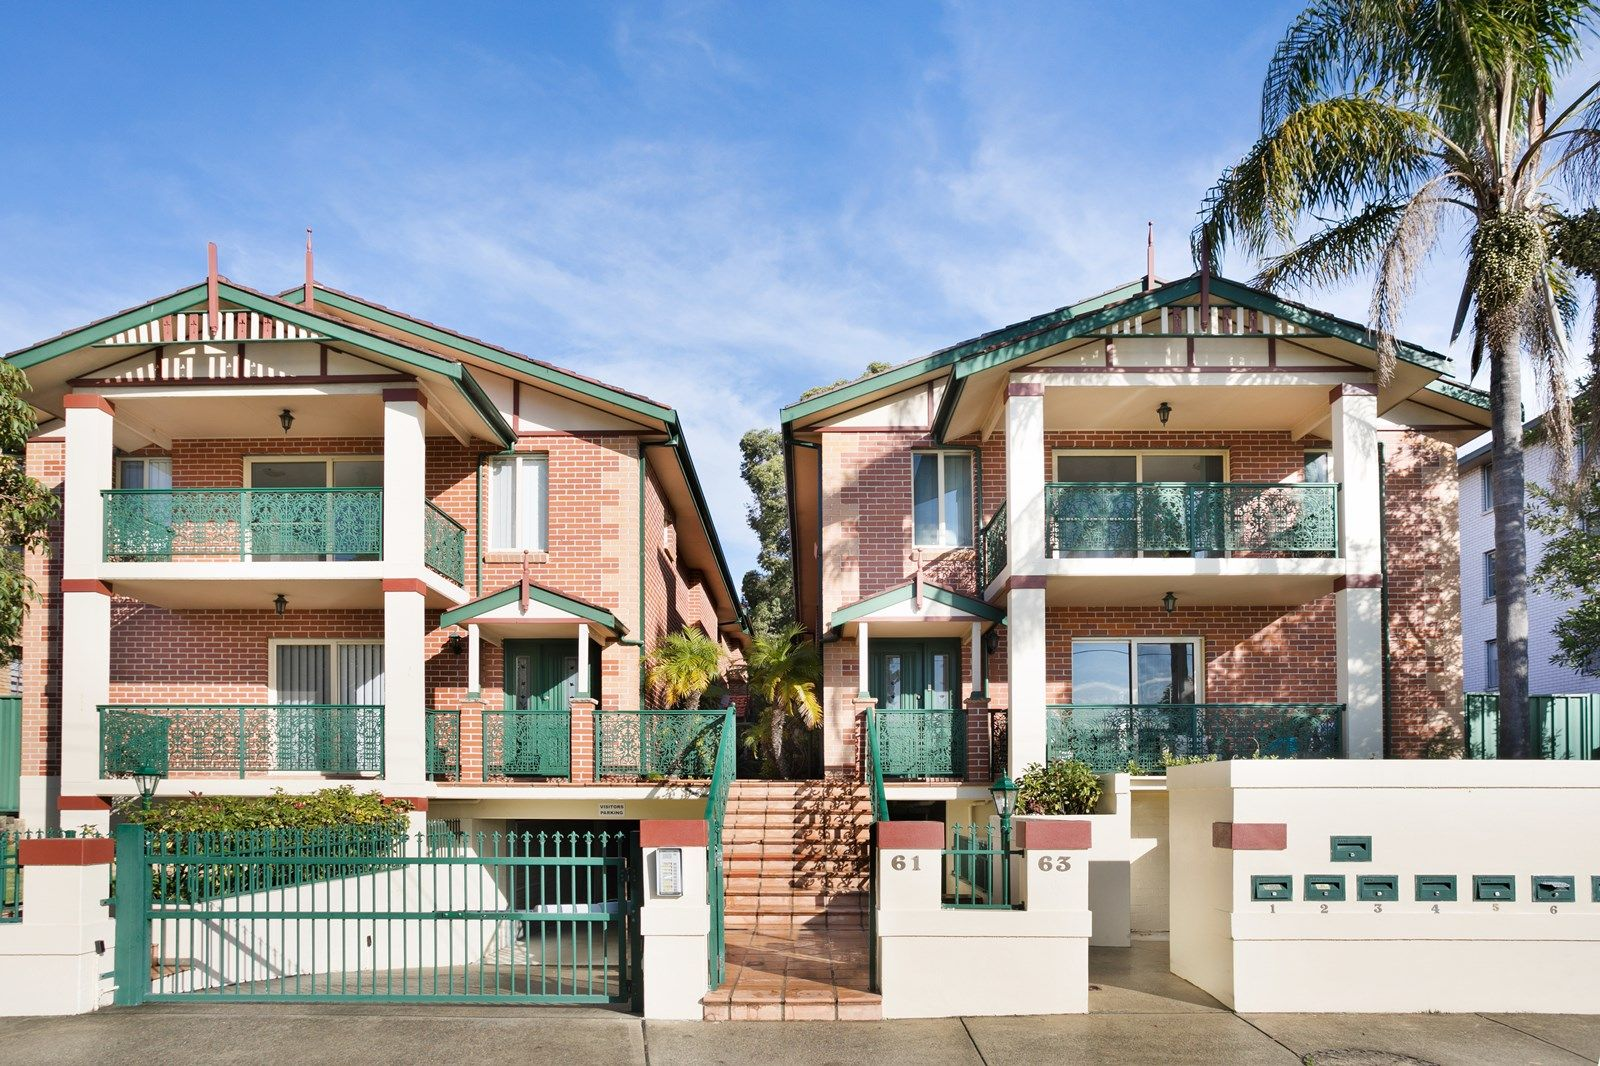 8/61-63 Parkview Road, Russell Lea NSW 2046, Image 2